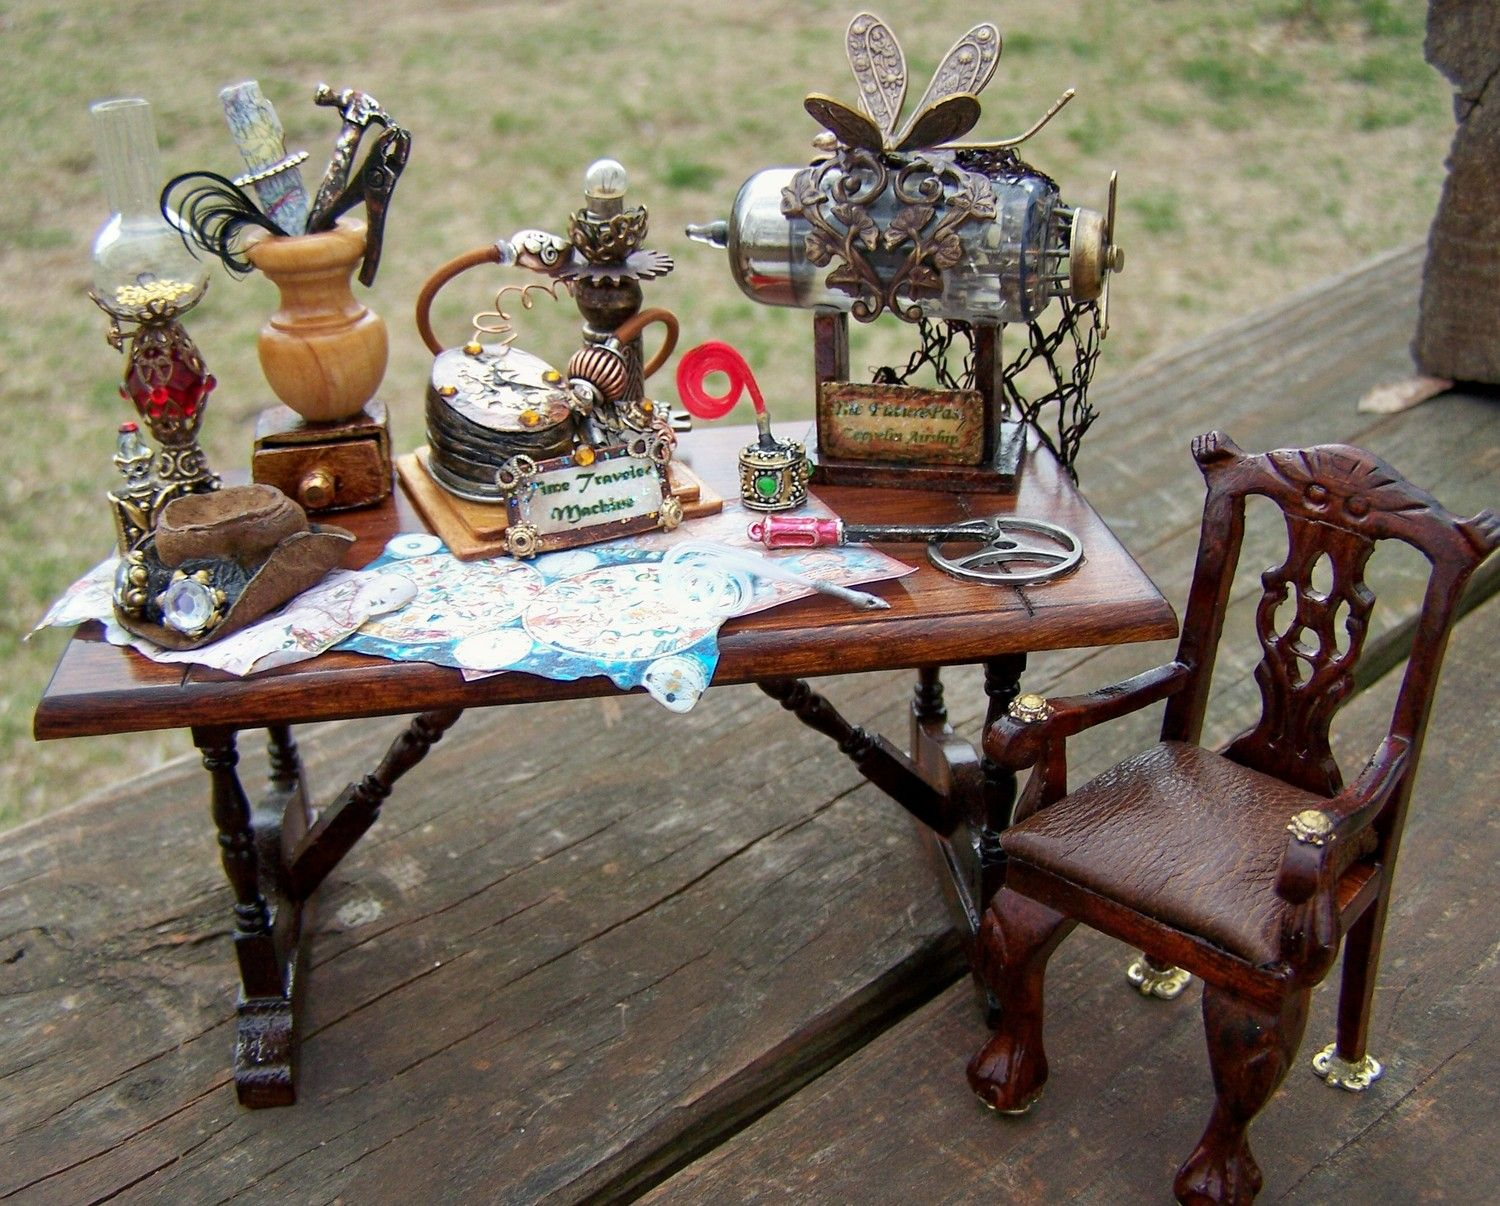 Steampunk for the dollhouse